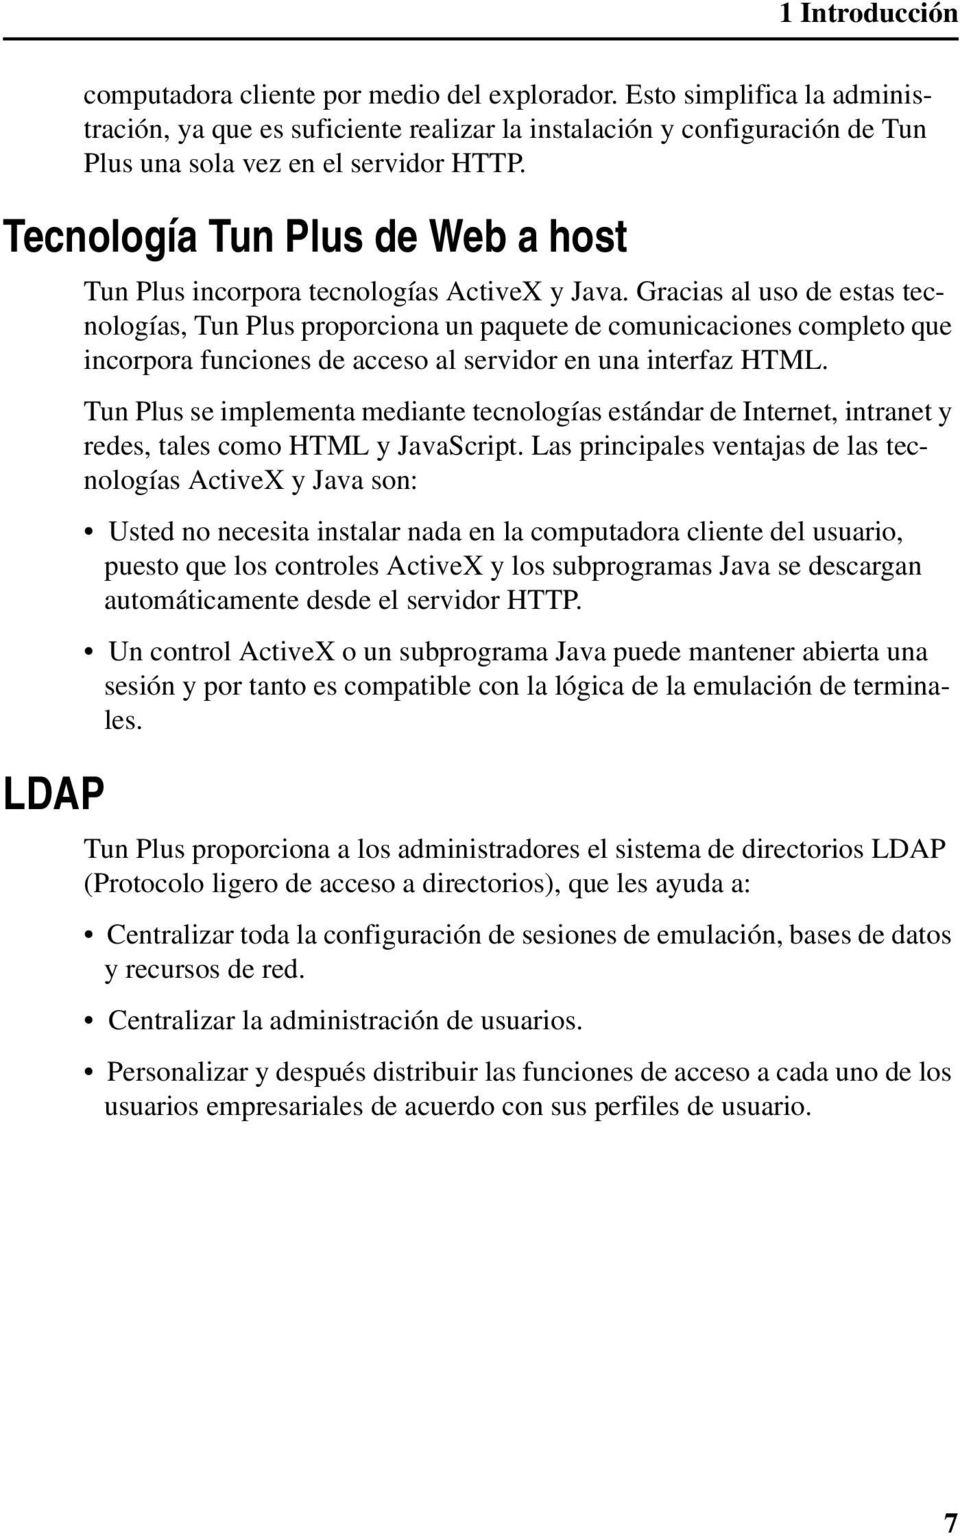 Tecnología Tun Plus de Web a host LDAP Tun Plus incorpora tecnologías ActiveX y Java.